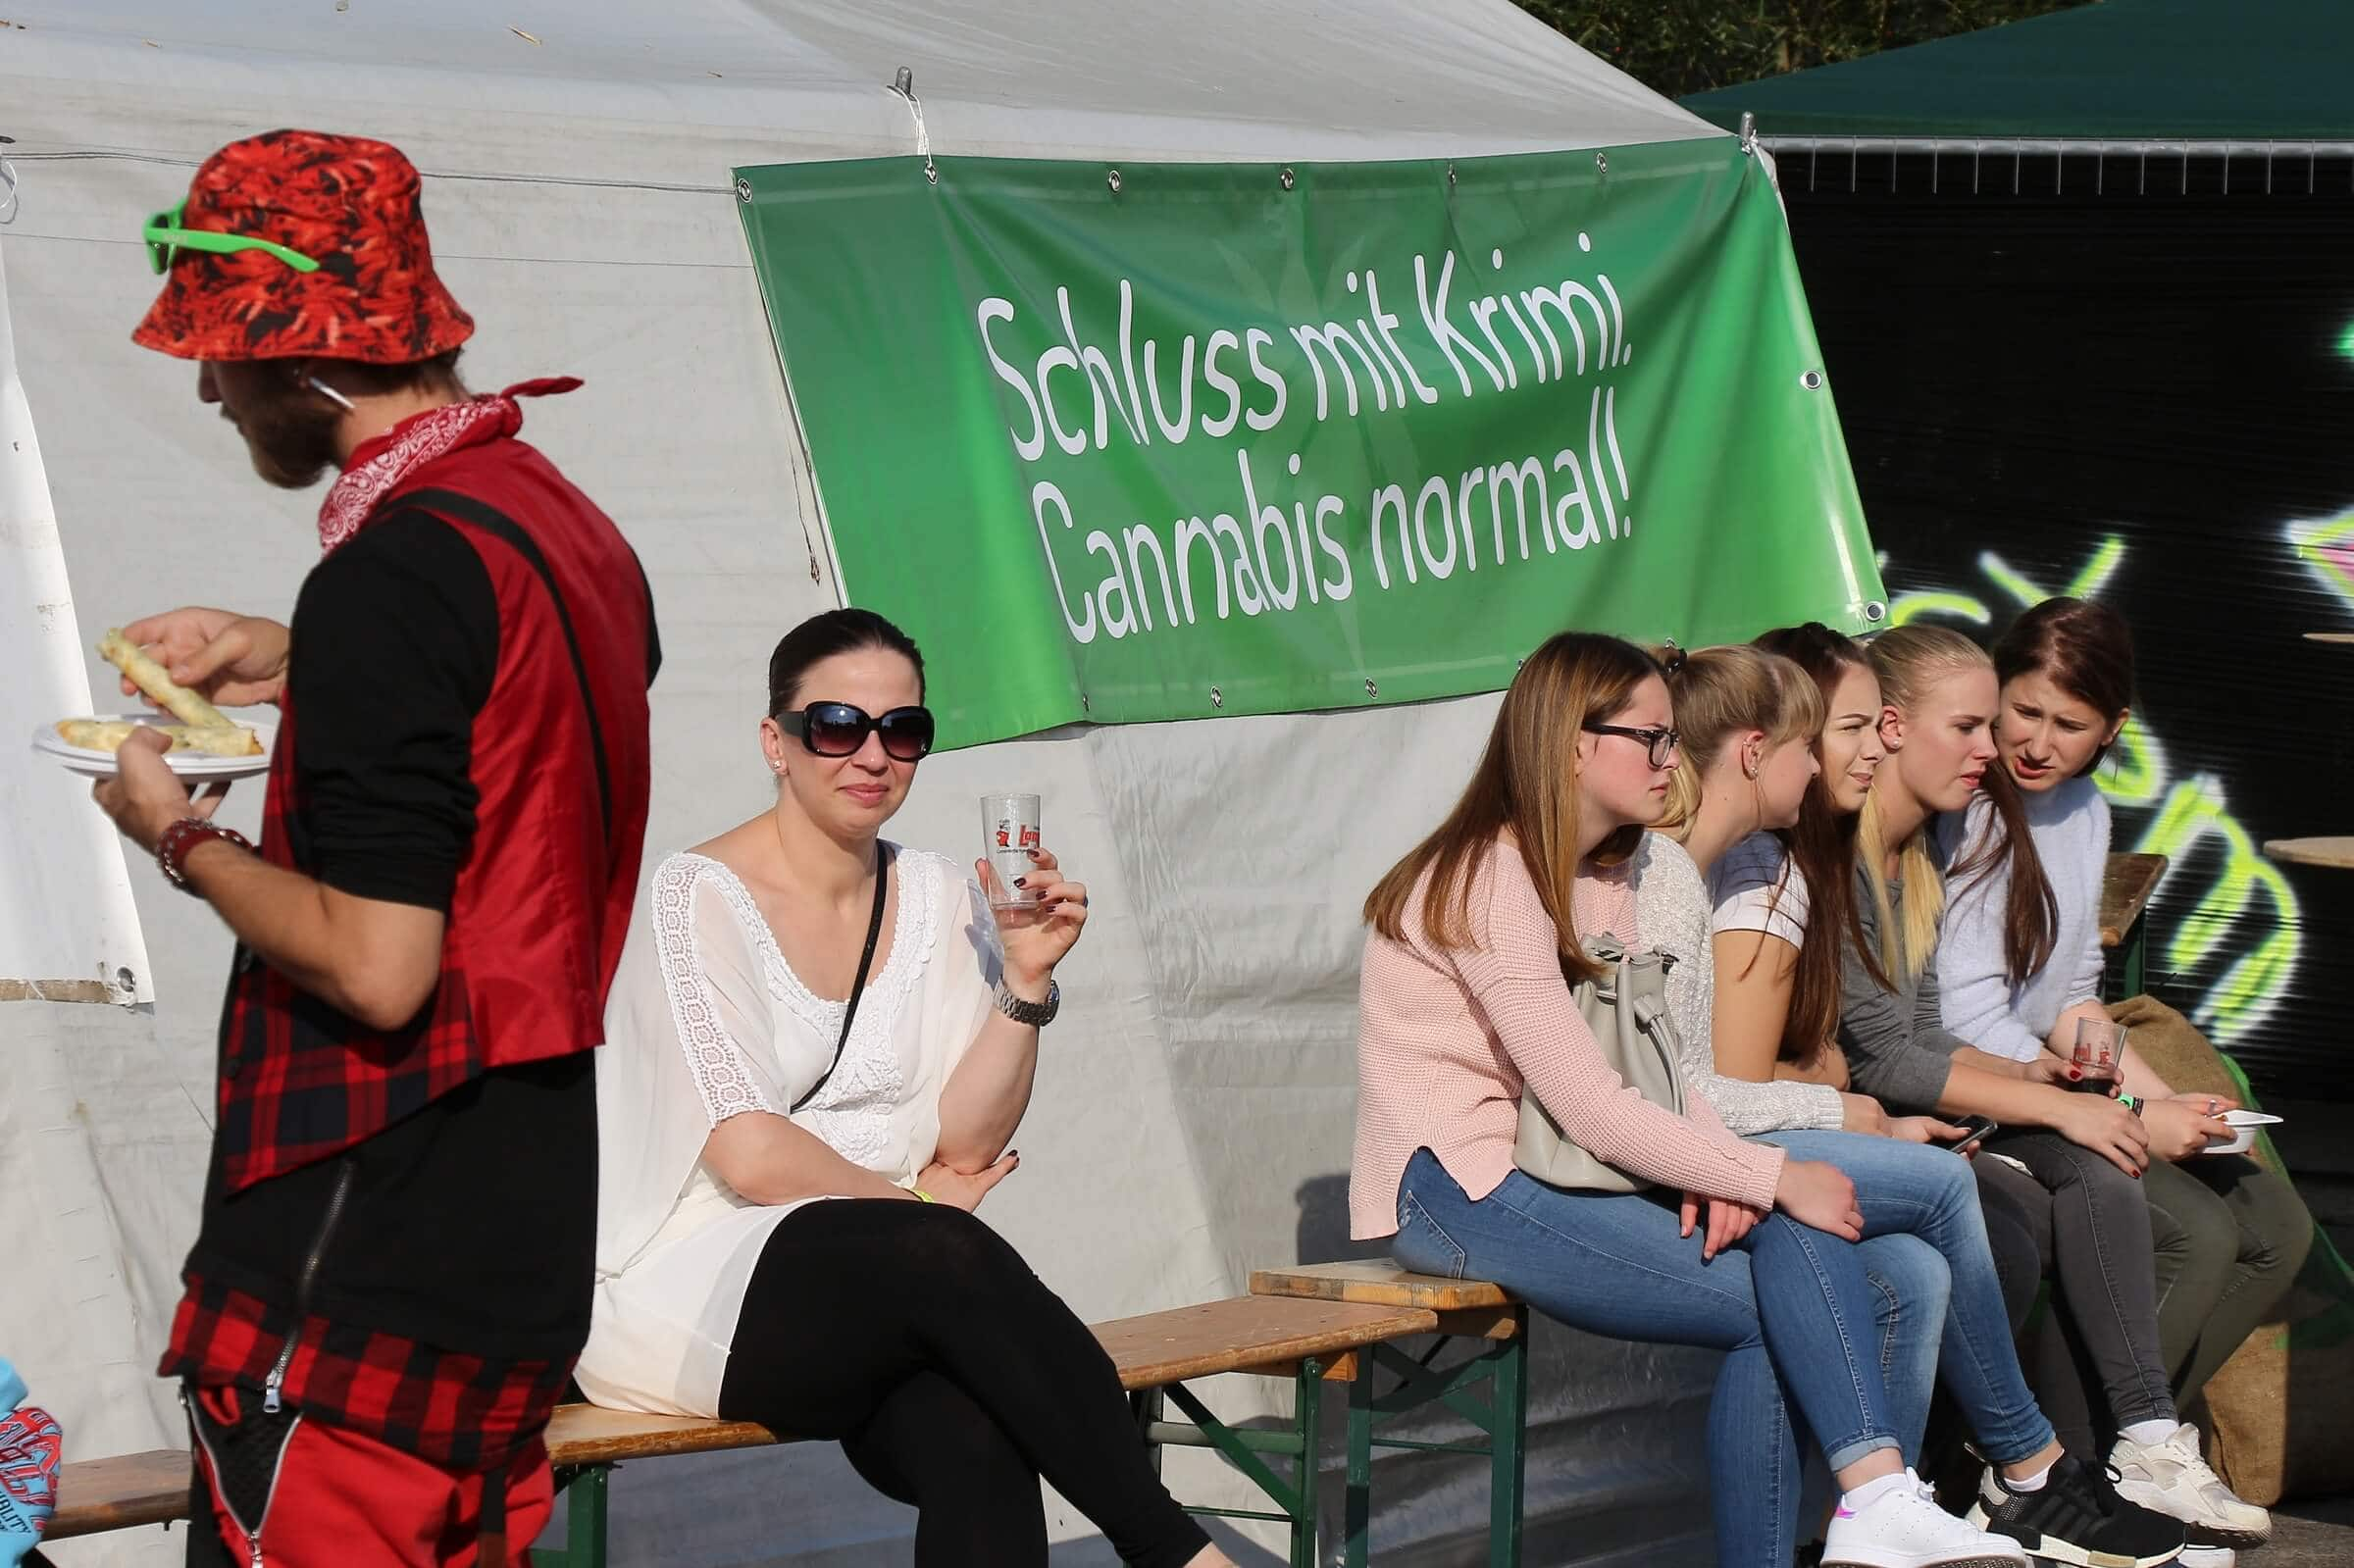 Schluss mit Krimi. Cannabis normal!